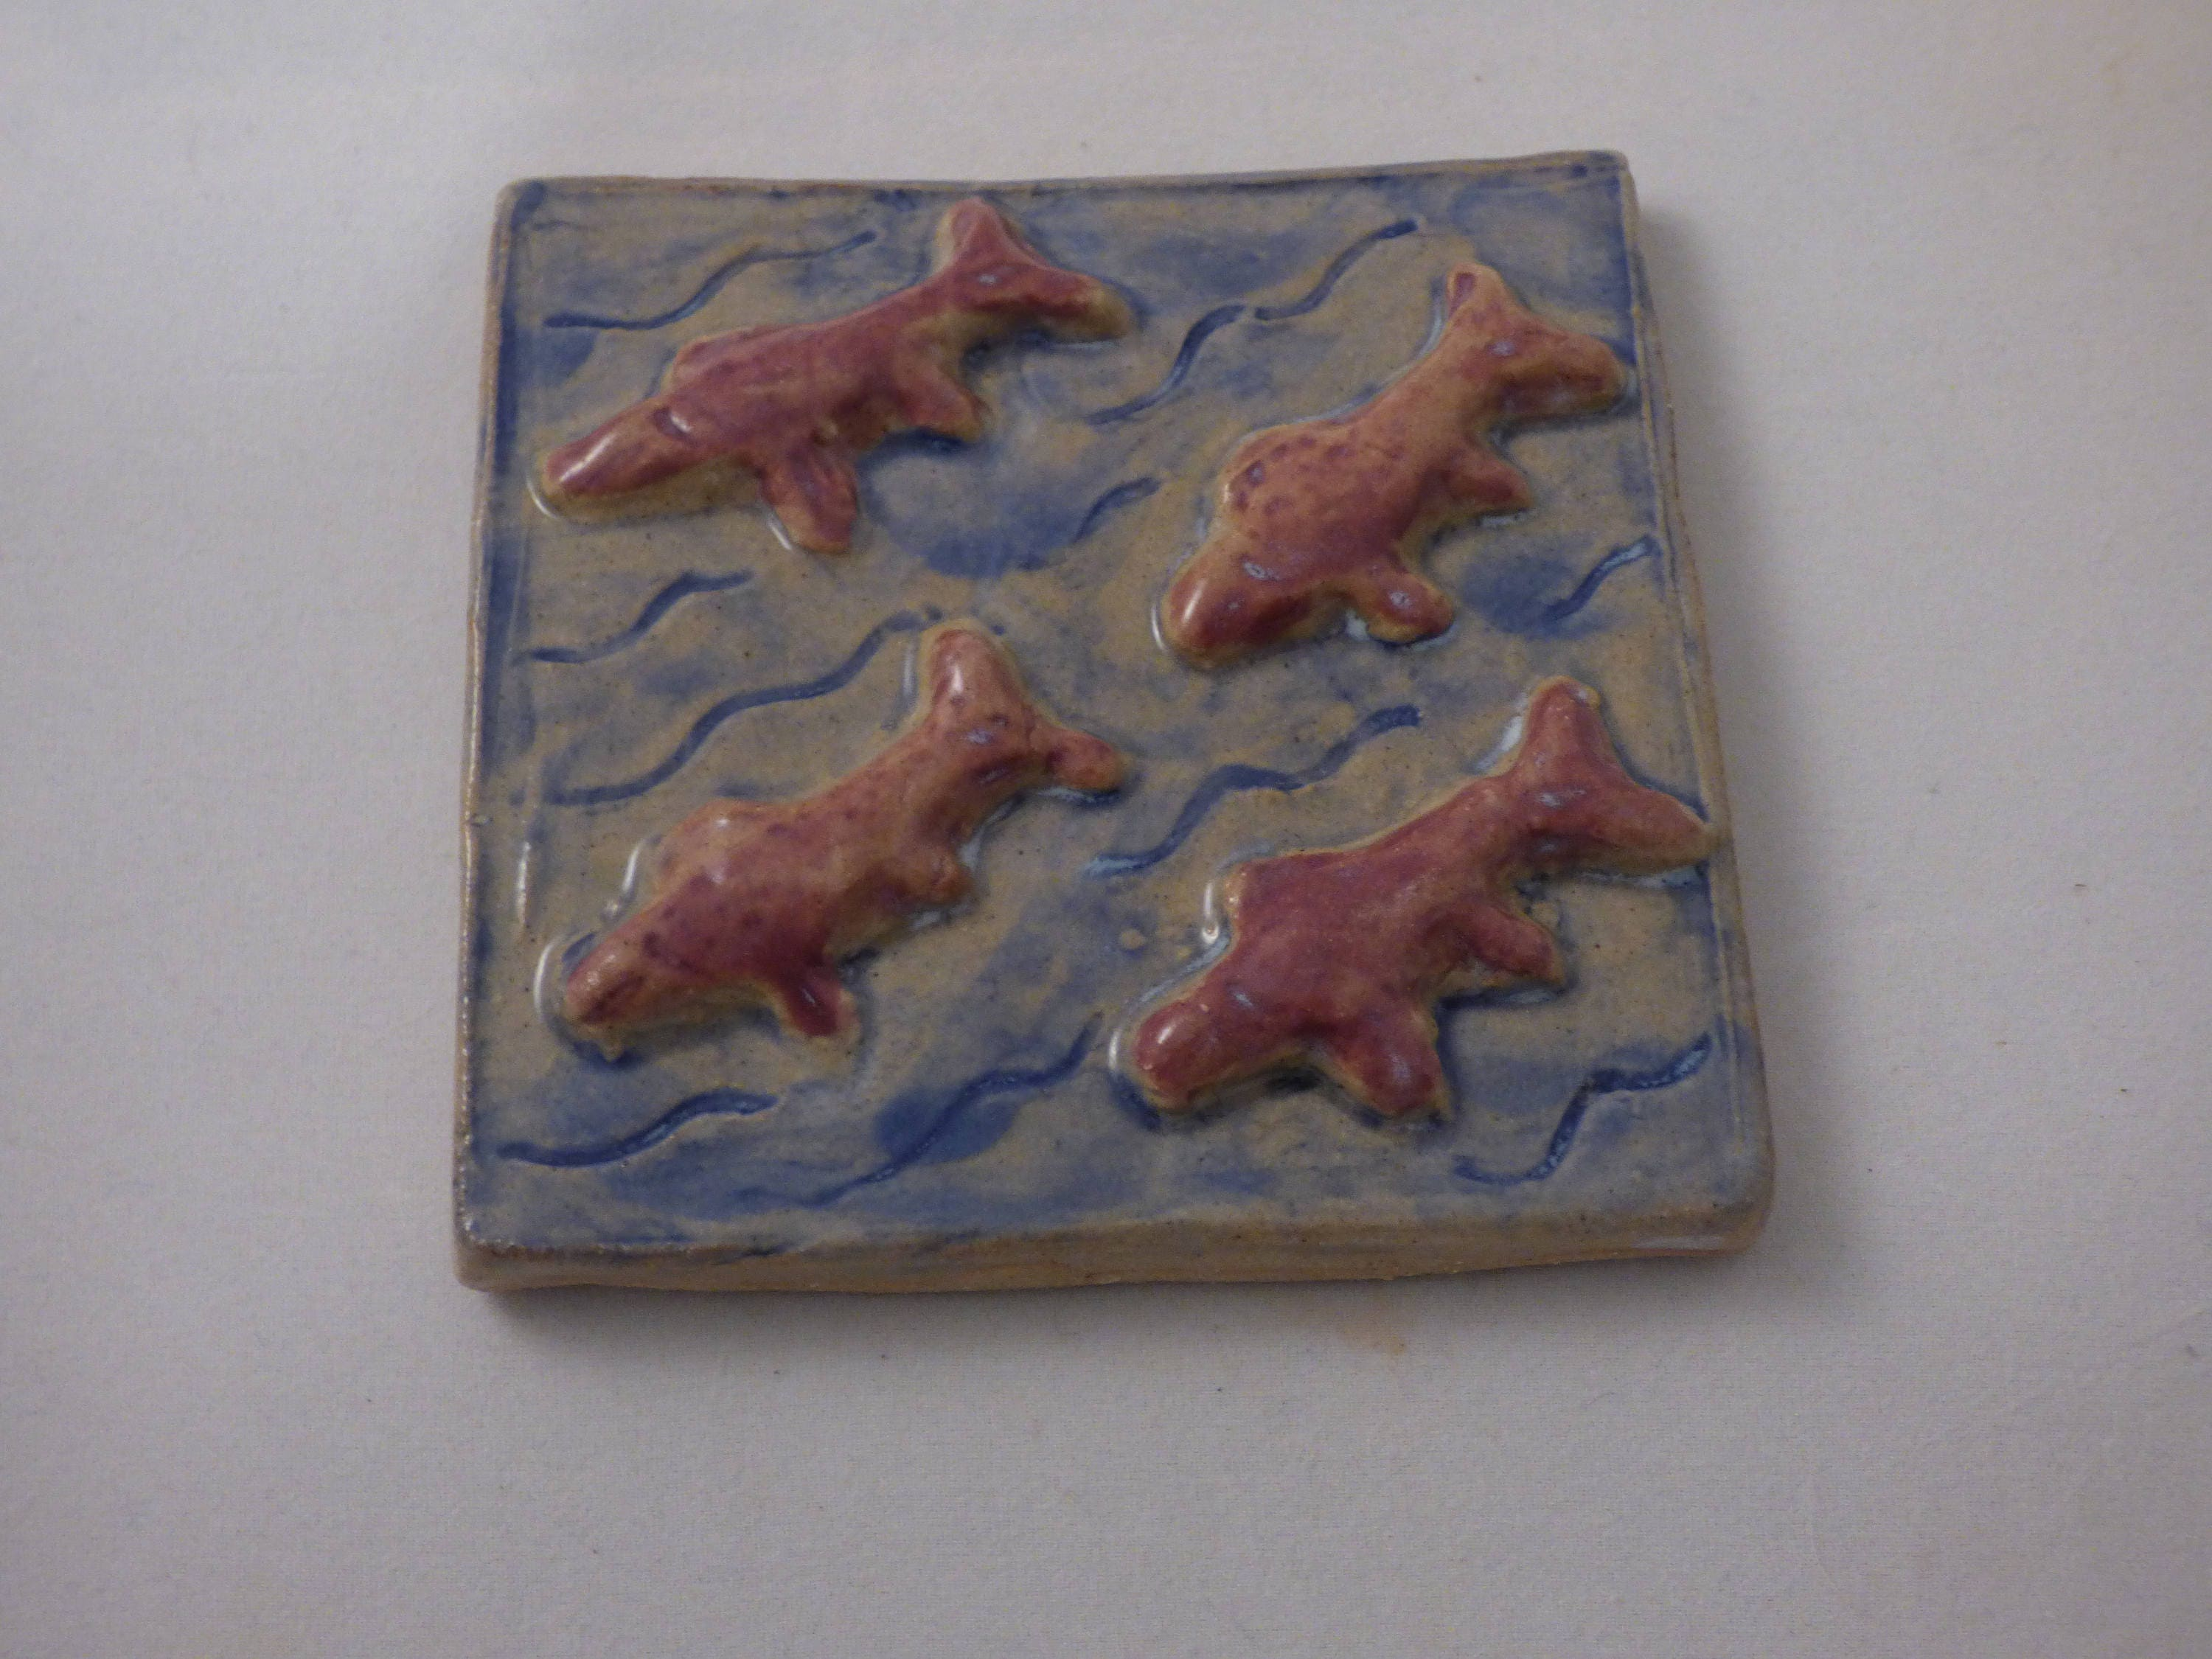 Hand painted ceramic tile ceramic coaster ceramic trivet ceramic hand painted ceramic tile ceramic coaster ceramic trivet ceramic wall tile fishes dailygadgetfo Image collections